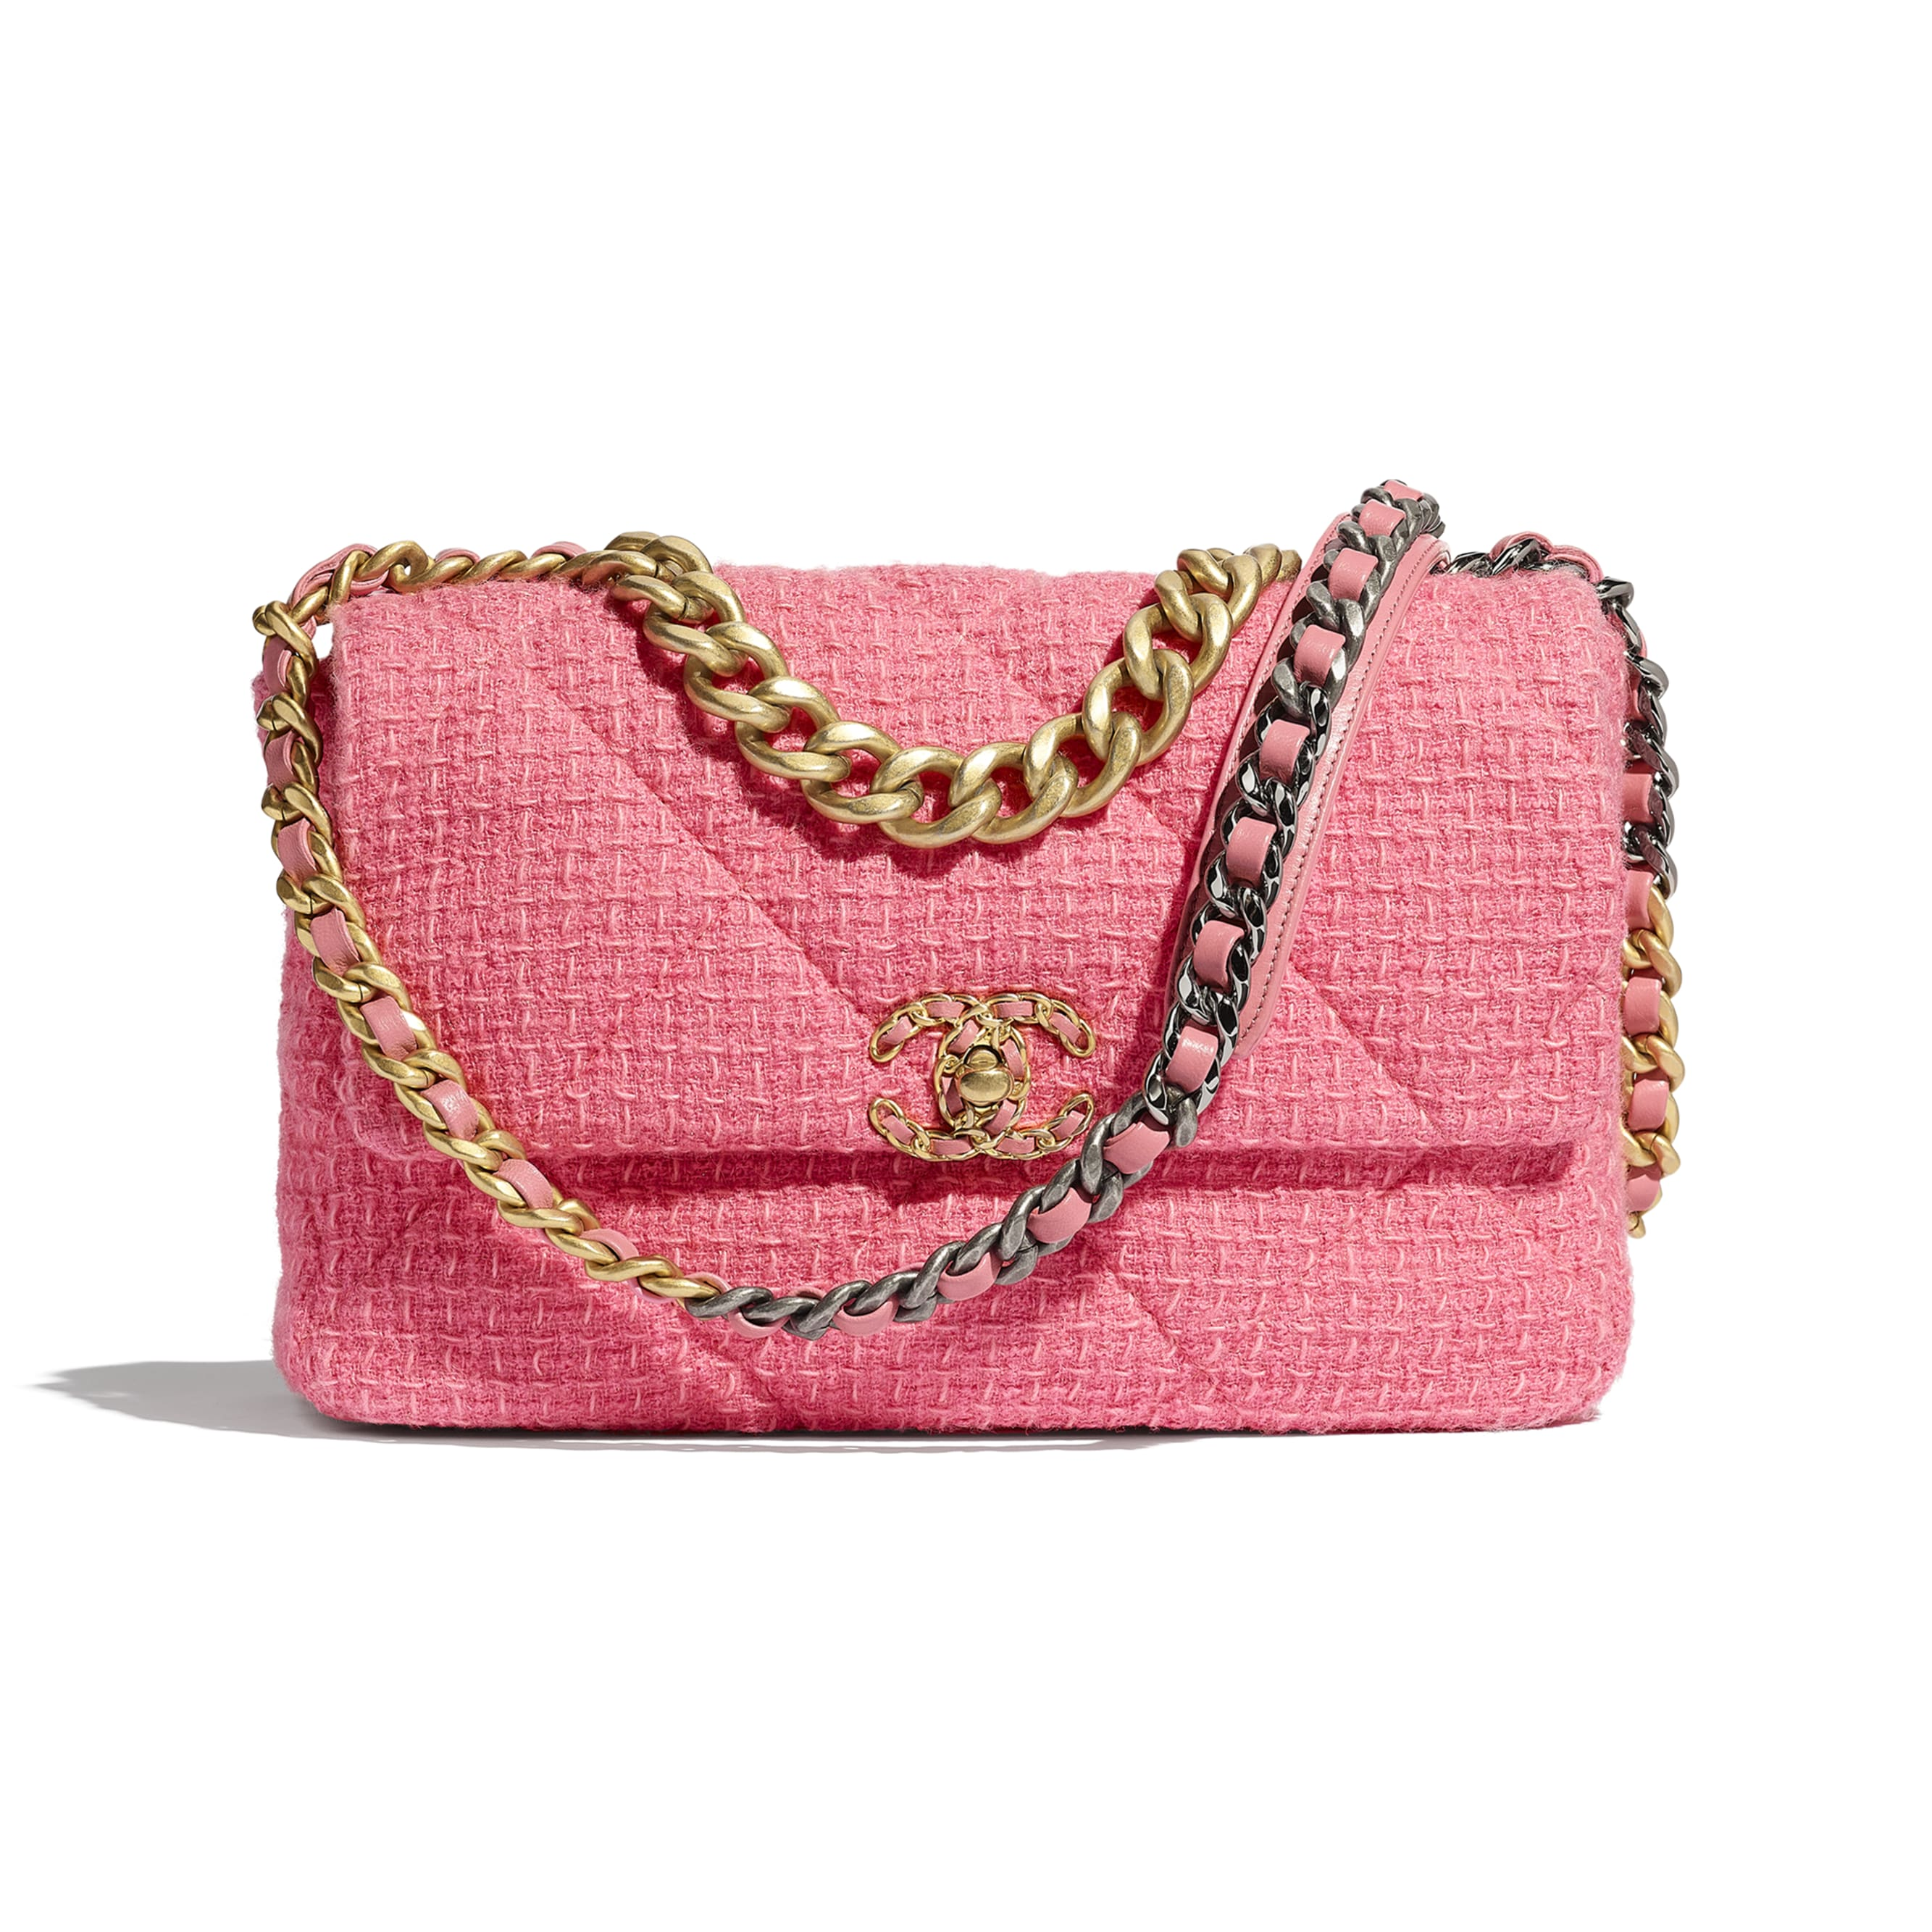 CHANEL 19 Large Flap Bag - Pink - Wool Tweed, Gold-Tone, Silver-Tone & Ruthenium-Finish Metal - CHANEL - Default view - see standard sized version